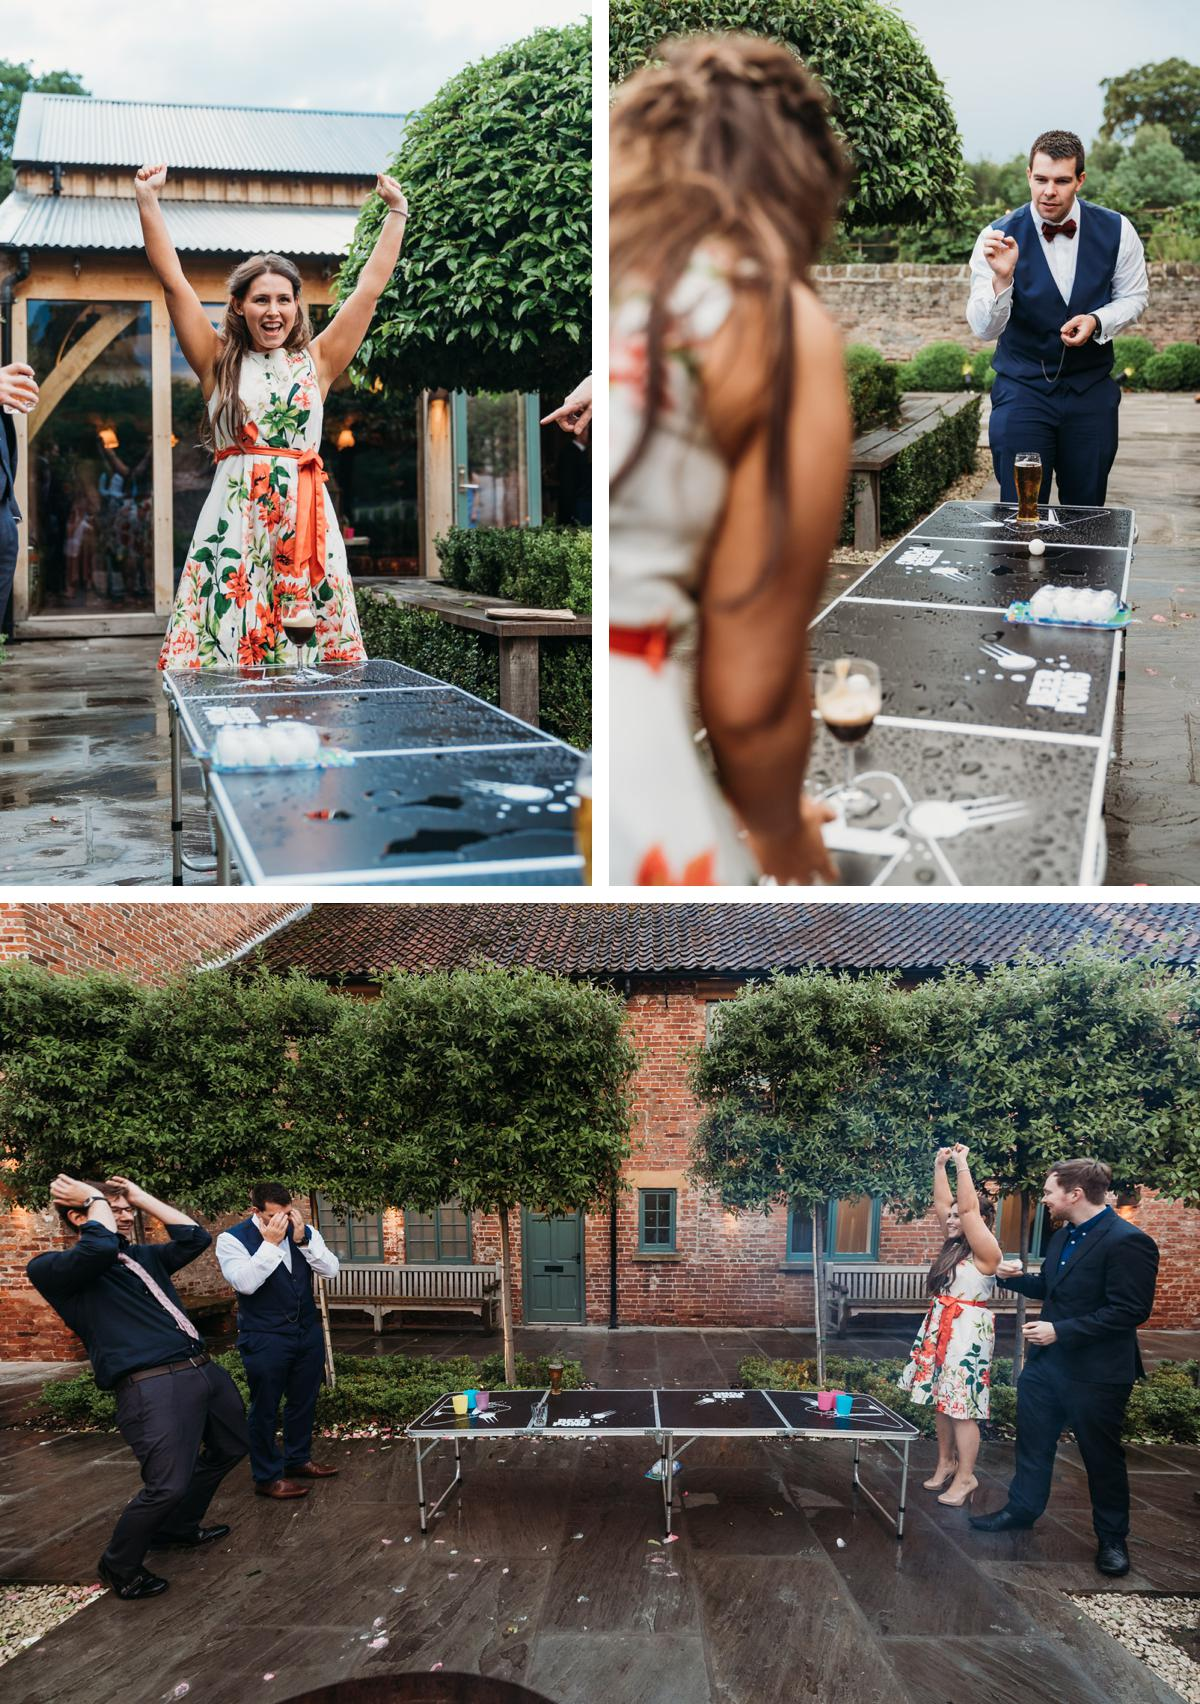 Wedding guests playing beer pong in the courtyard at a Hazel Gap Barn wedding